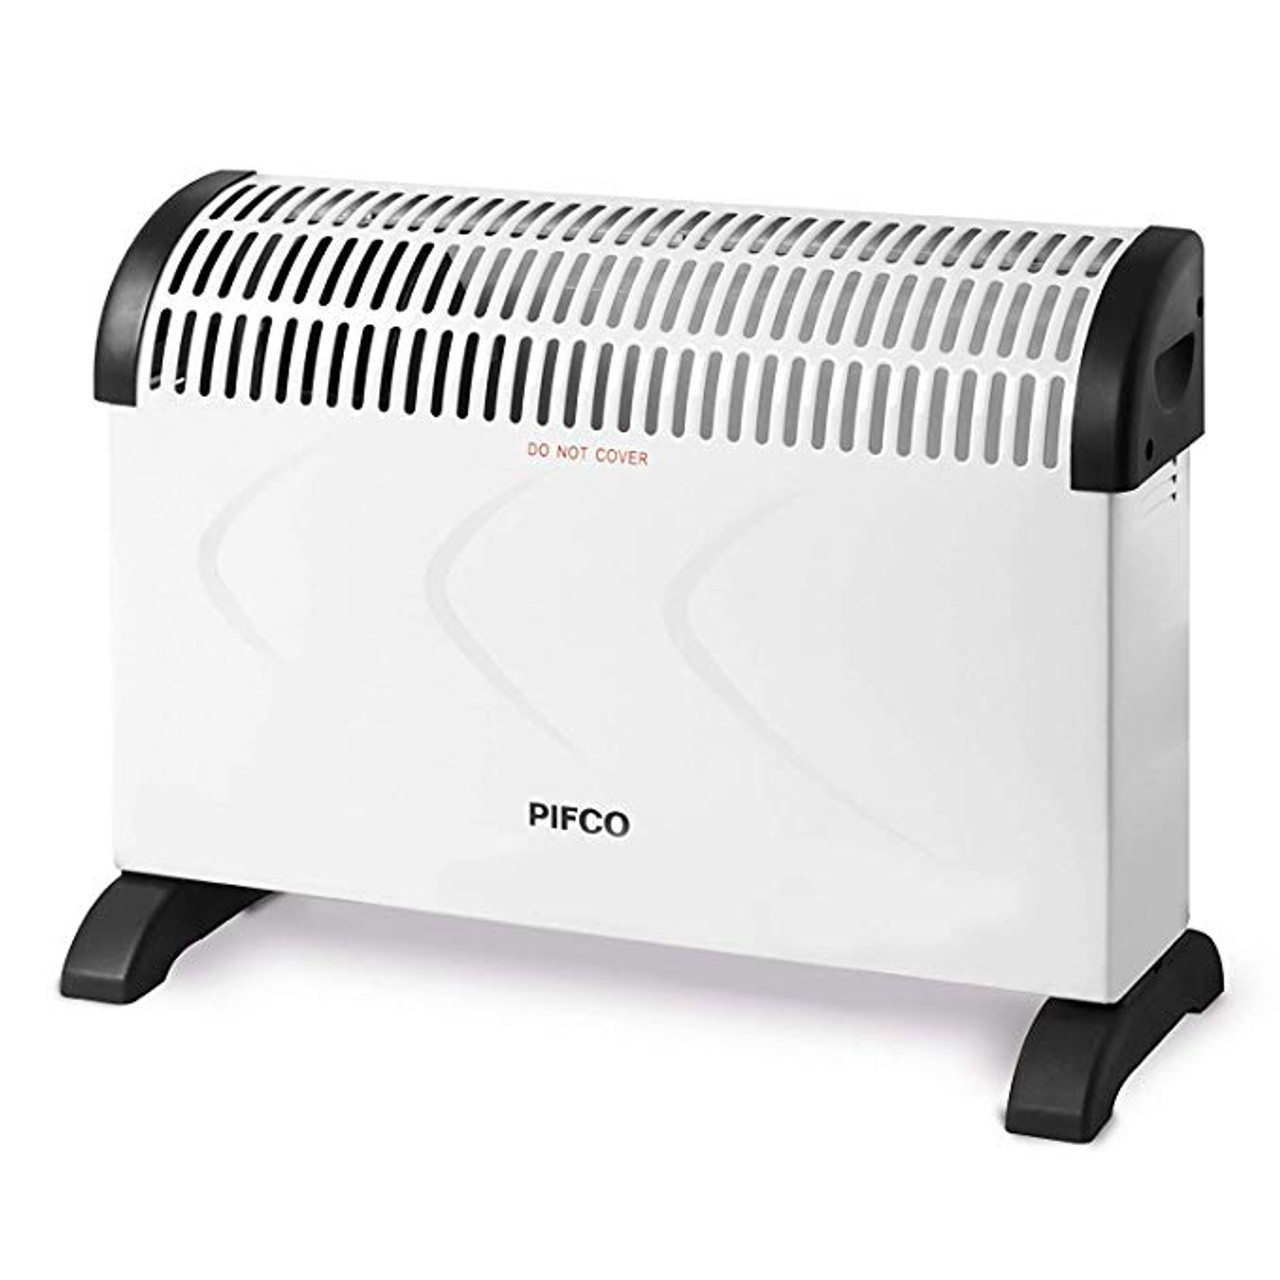 PIFCO Convection Heater 2kw